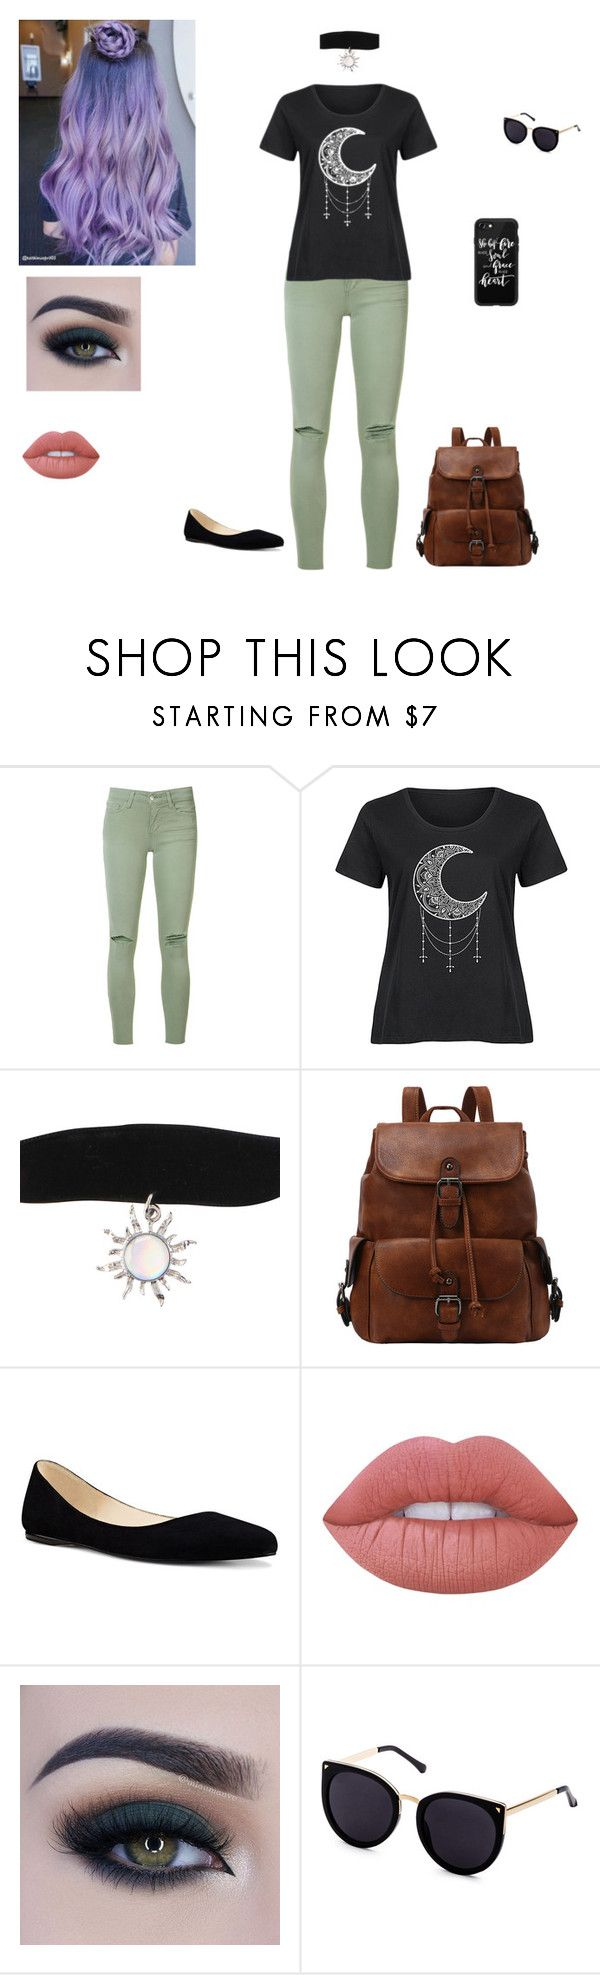 teen outfit by nevaehweir619 on Polyvore featuring LC Trendz, Joe's Jeans, Nine West, Hot Topic, Casetify, Too Faced Cosmetics, Lime Crime and plus size clothing